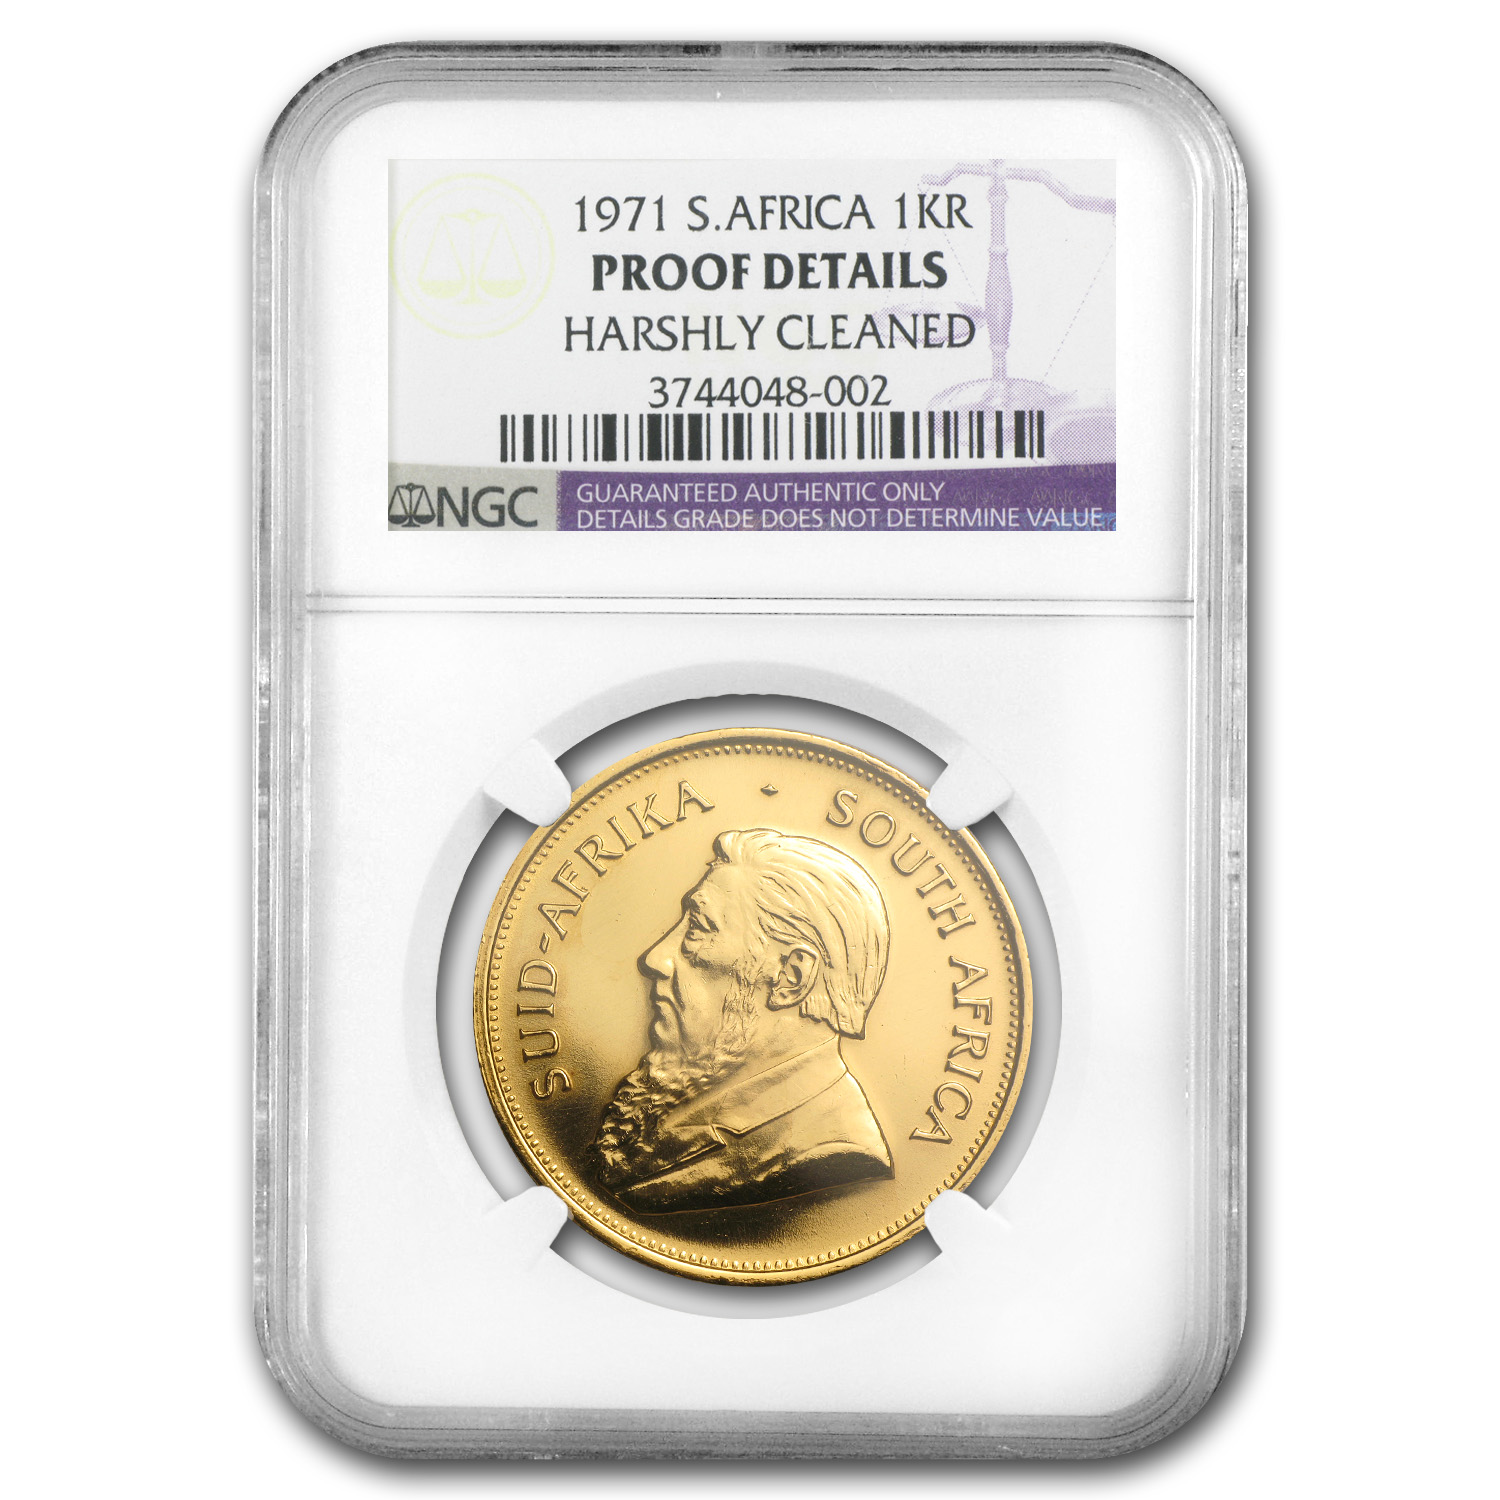 1971 South Africa 1 oz Proof Gold Krugerrand Details NGC